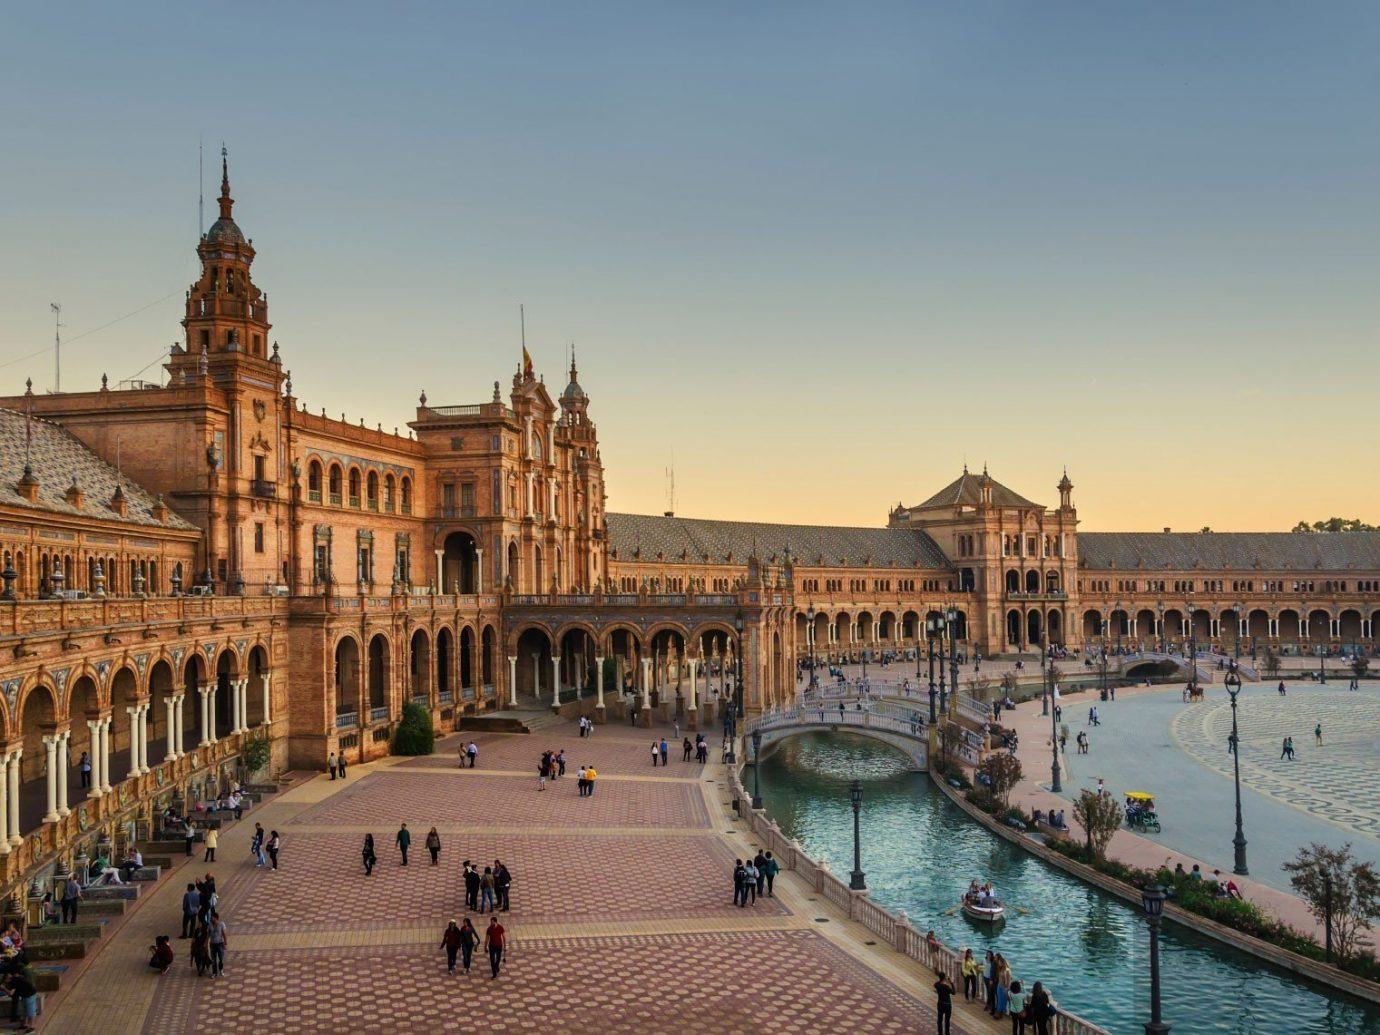 Trip Ideas outdoor sky water plaza landmark palace town square cityscape ancient history long